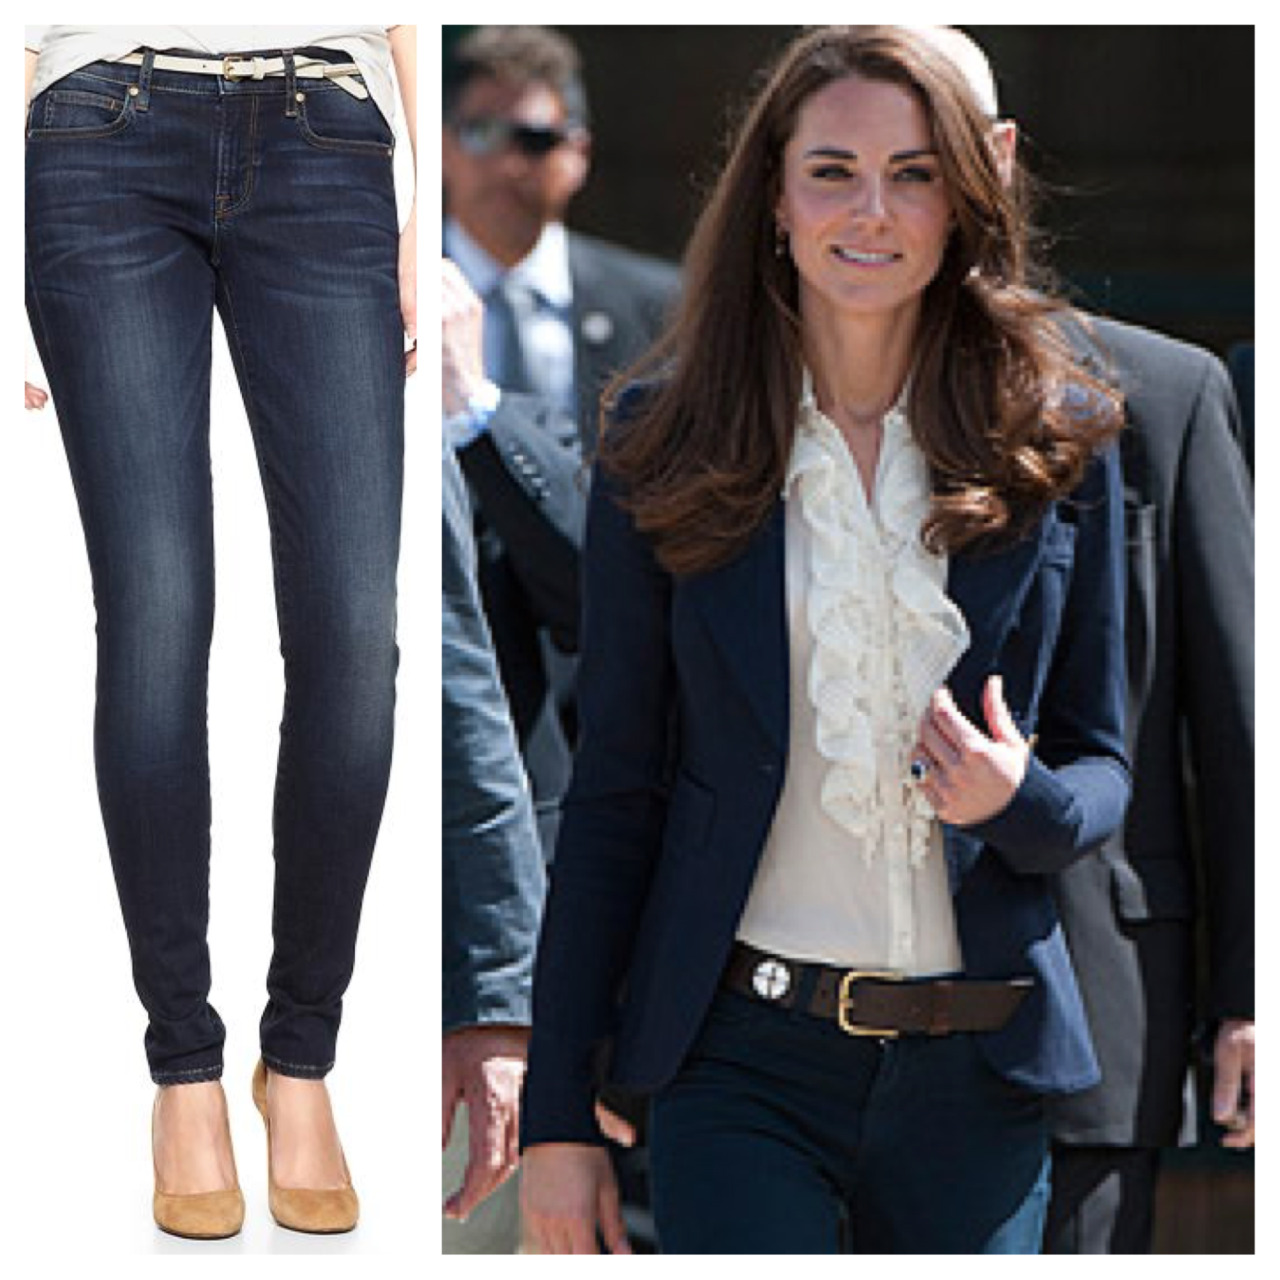 Kate Middleton Shops at Gap, Too, Crabtree & Evelyn Launch their First Nail Polish Collection, and More We know it's silly, but we officially love the Duchess of Cambridge. She shops for jeggings at Gap—just like us. [Huffington Post] Crabtree & Evelyn is the latest beauty brand to get into the polish game. [SheFinds] Still trying to learn the topknot? Find inspiration in Jennifer Lopez's coiffure from the weekend. [Glamour] Vanity Fair heads to France! The magazine will launch its French edition this July. [WWD] Lea Michele debuts an extreme ombre hairstyle at the Screen Actors Guild Awards. [UsMagazine.com] Don't miss the top beauty and fashion trends for the coming year: here's what's in and what's out for 2013. [Beauty Blitz] —Charisse Learn about even more ways to style the topknot, inspired by Katie Gallagher's spring 2013 runway.